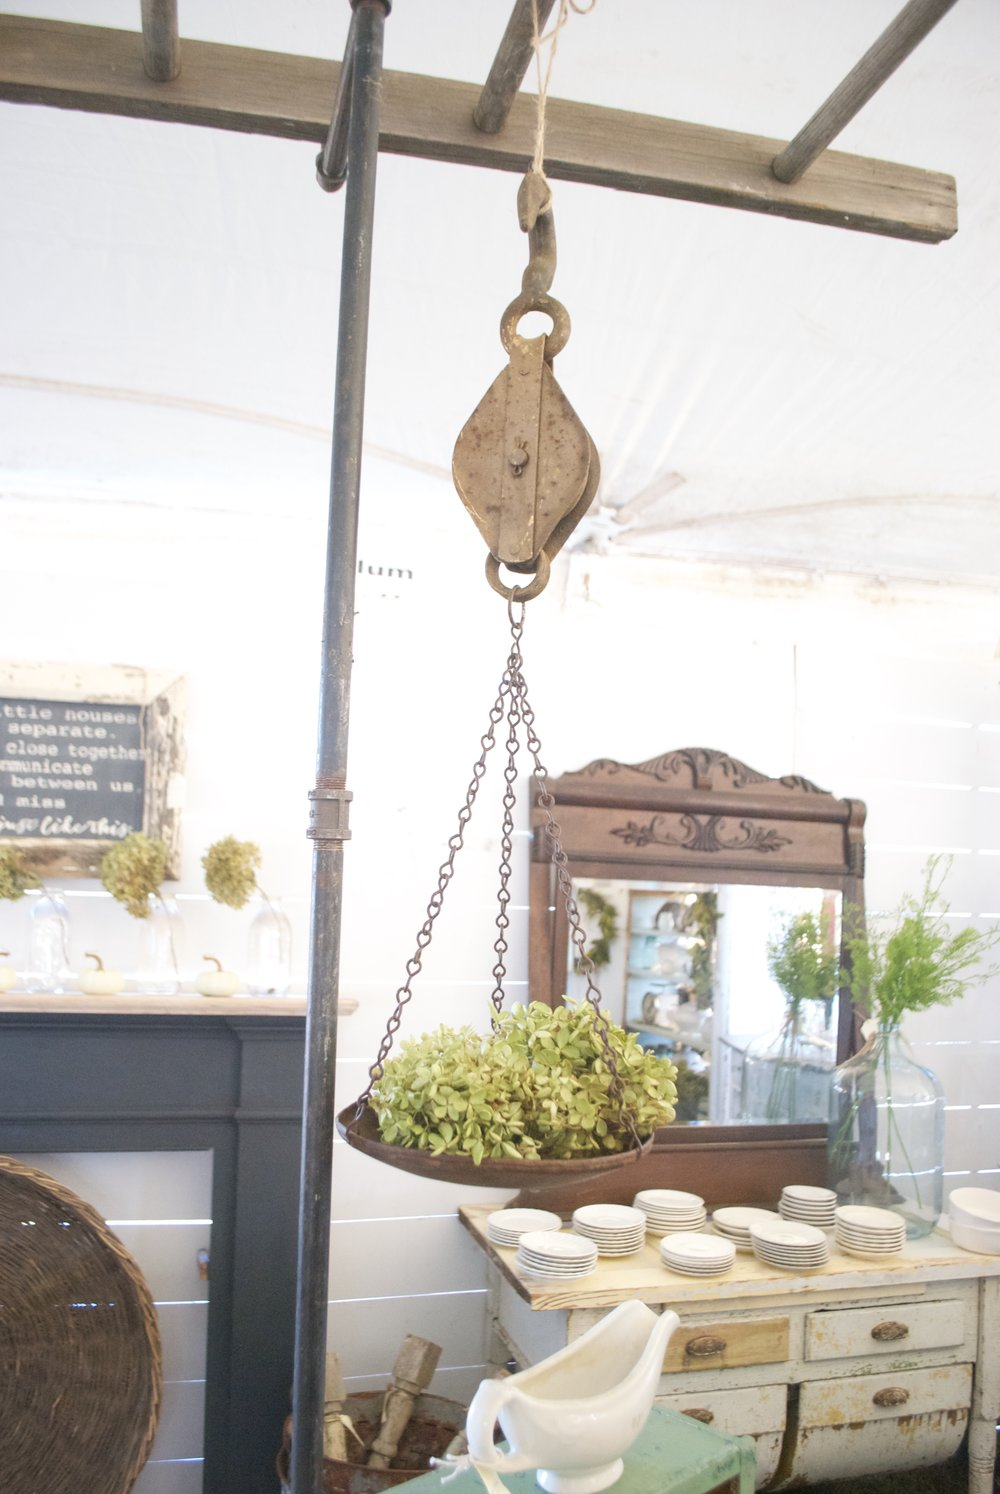 The Market on Chapel Hill- Plum Pretty Decor and Design's Booth Display